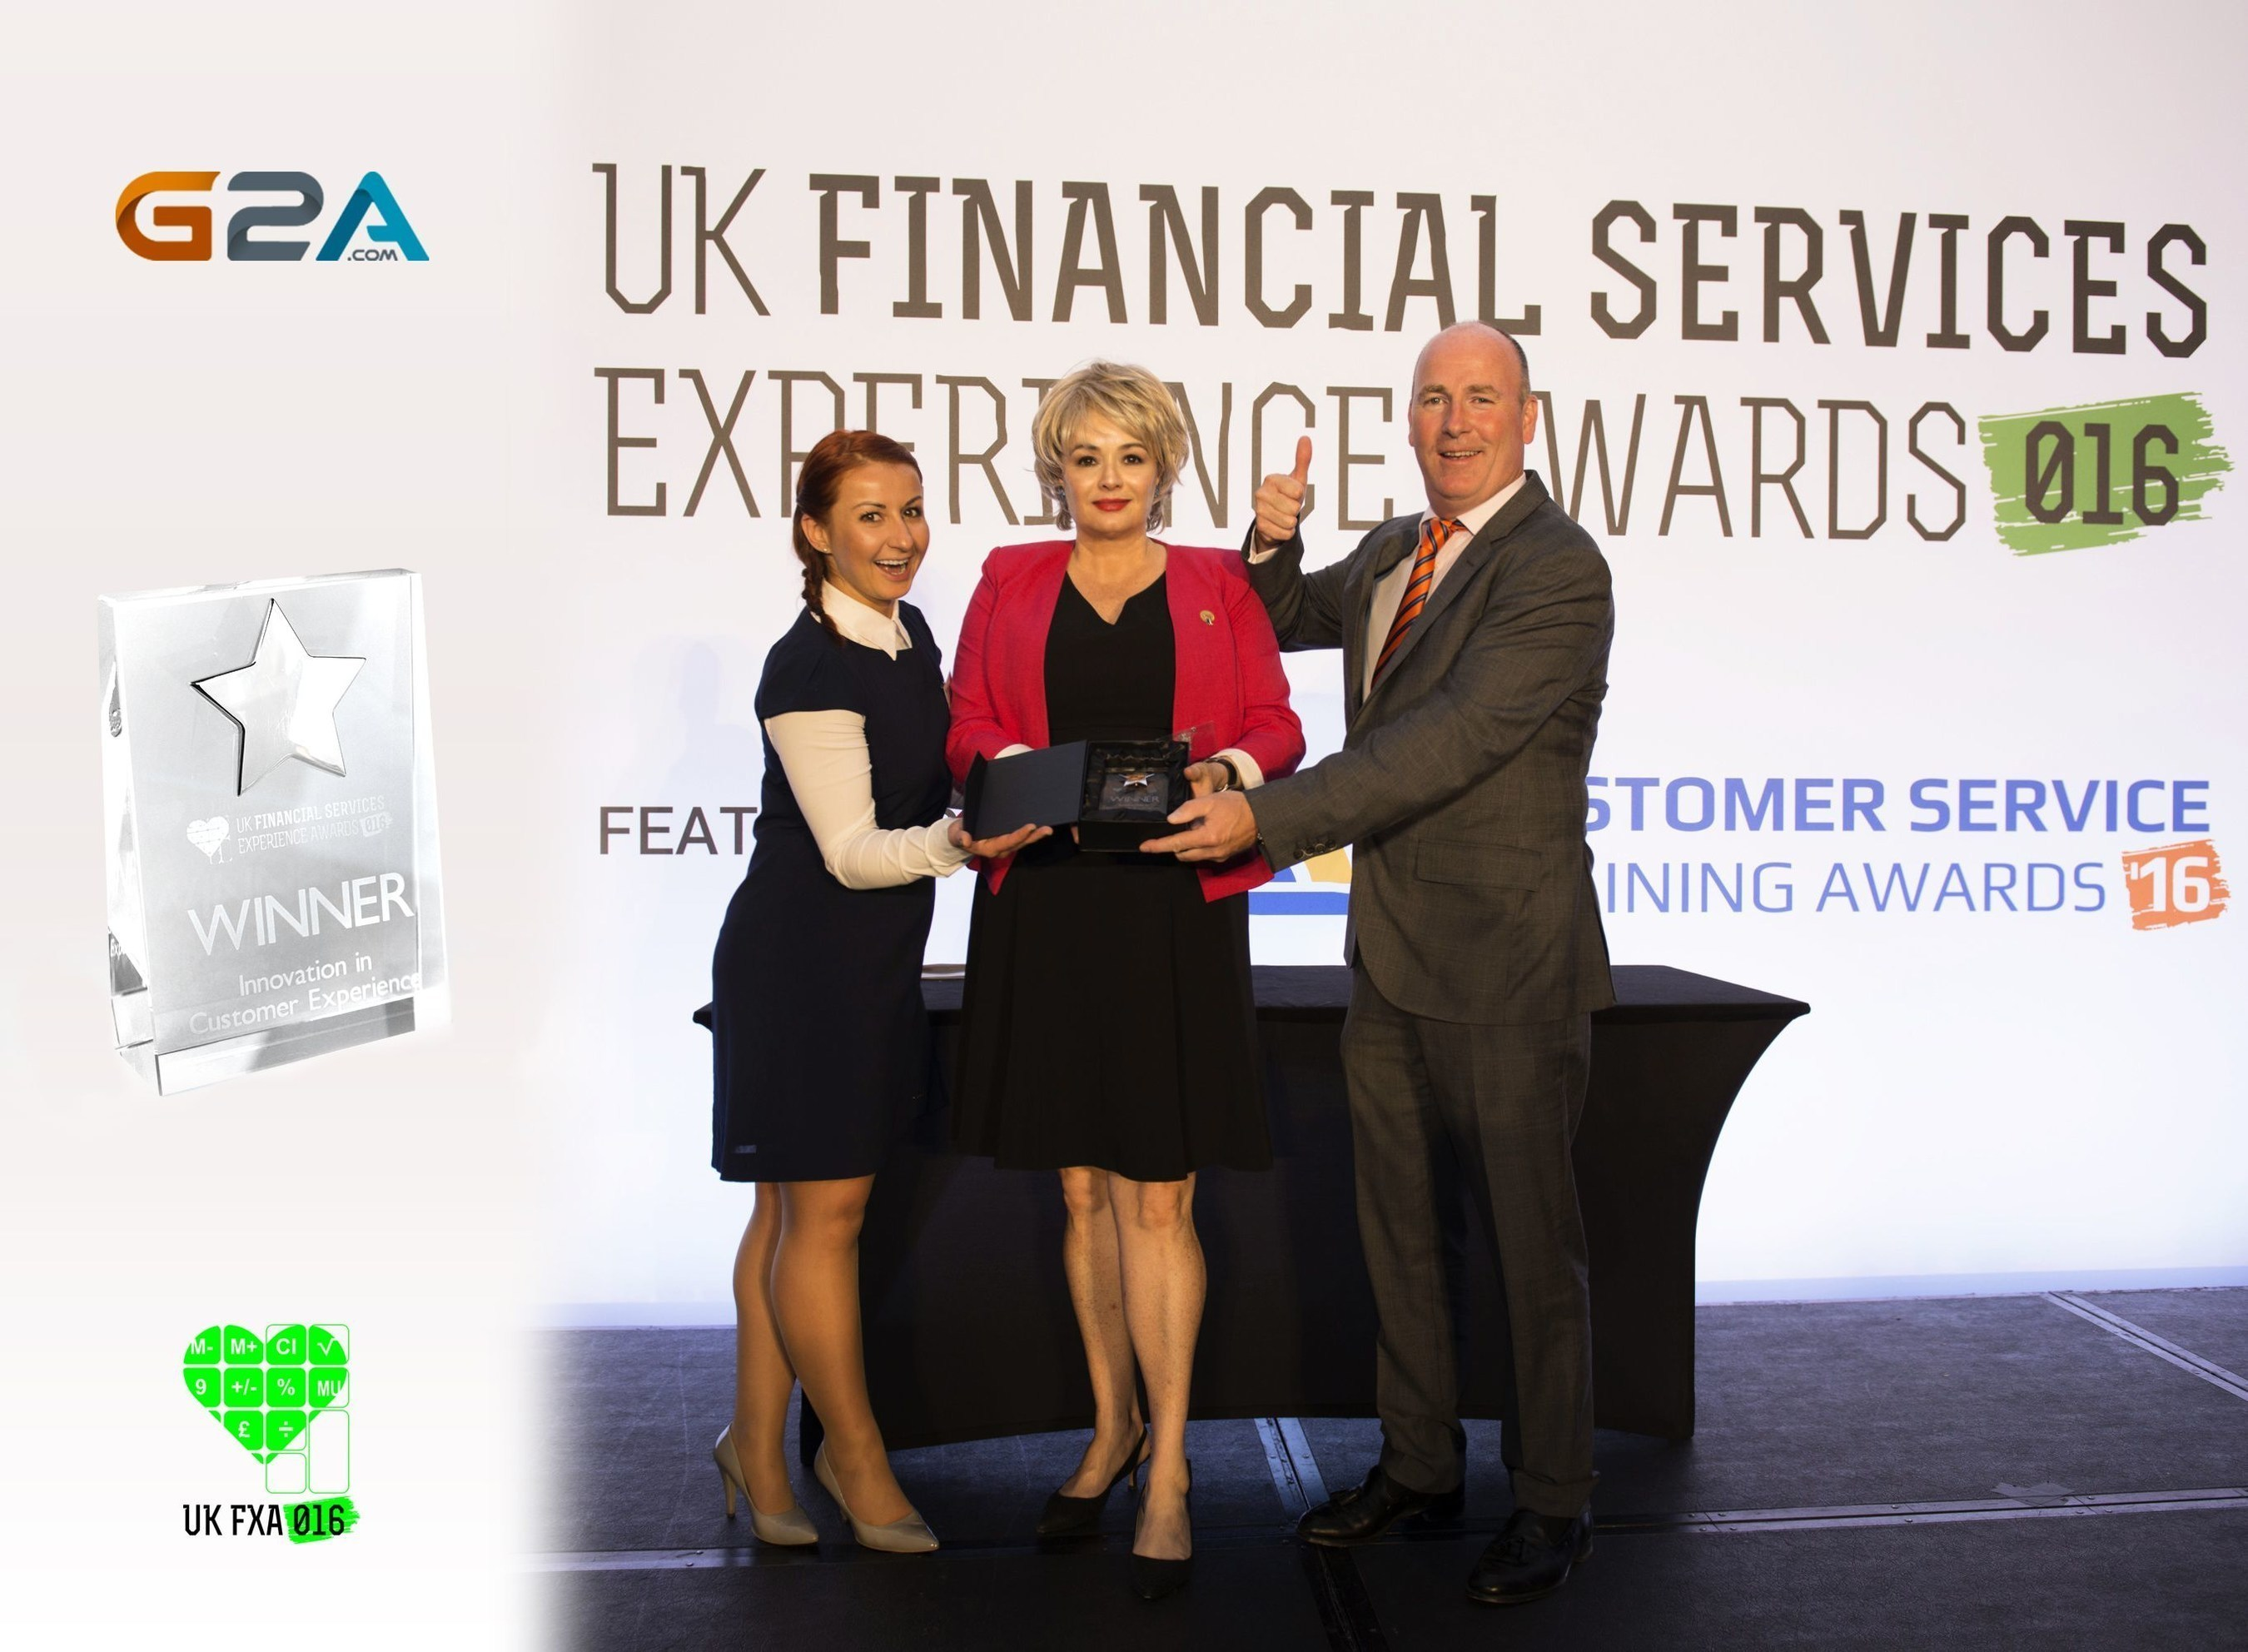 G2A is announced as a winner for the UK Financial Business Award ceremony in London (Neil Skehel,  Chief Executive Officer of #Awards International, Jacqueline Purcell - Head of Global Public Relations at G2A, receiving the 'Innovation in Customer Experience' award with Ewa Morawiec from Global PR at #G2A.COM) (PRNewsFoto/G2A.com)